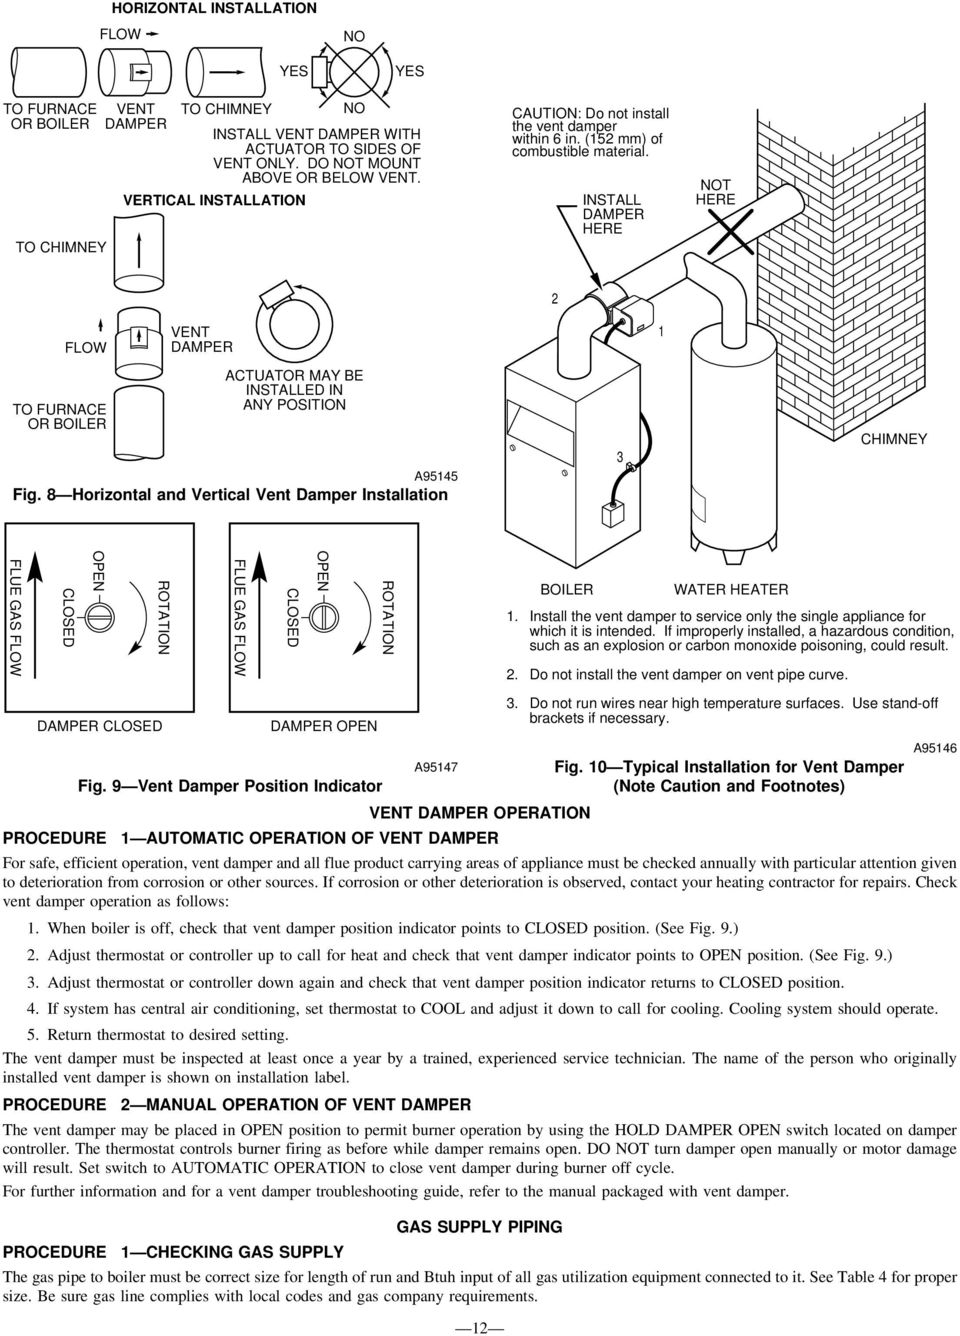 Installation Start Up And Operating Instructions Pdf Gas Boiler Vent Damper Wiring Diagrams Install Here Not 2 Flo 1 To Furnace Or Actuator May